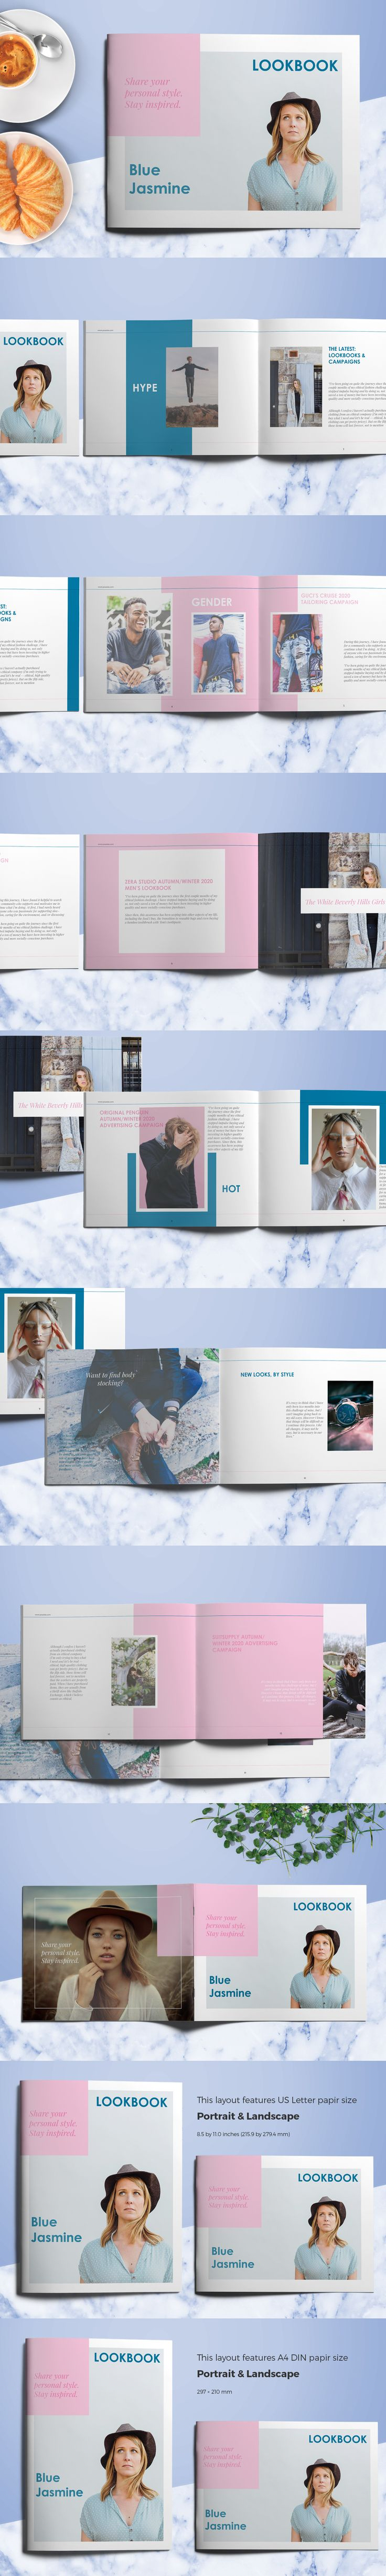 Fashion Lookbook is a fashion and lifestyle template for Adobe InDesign